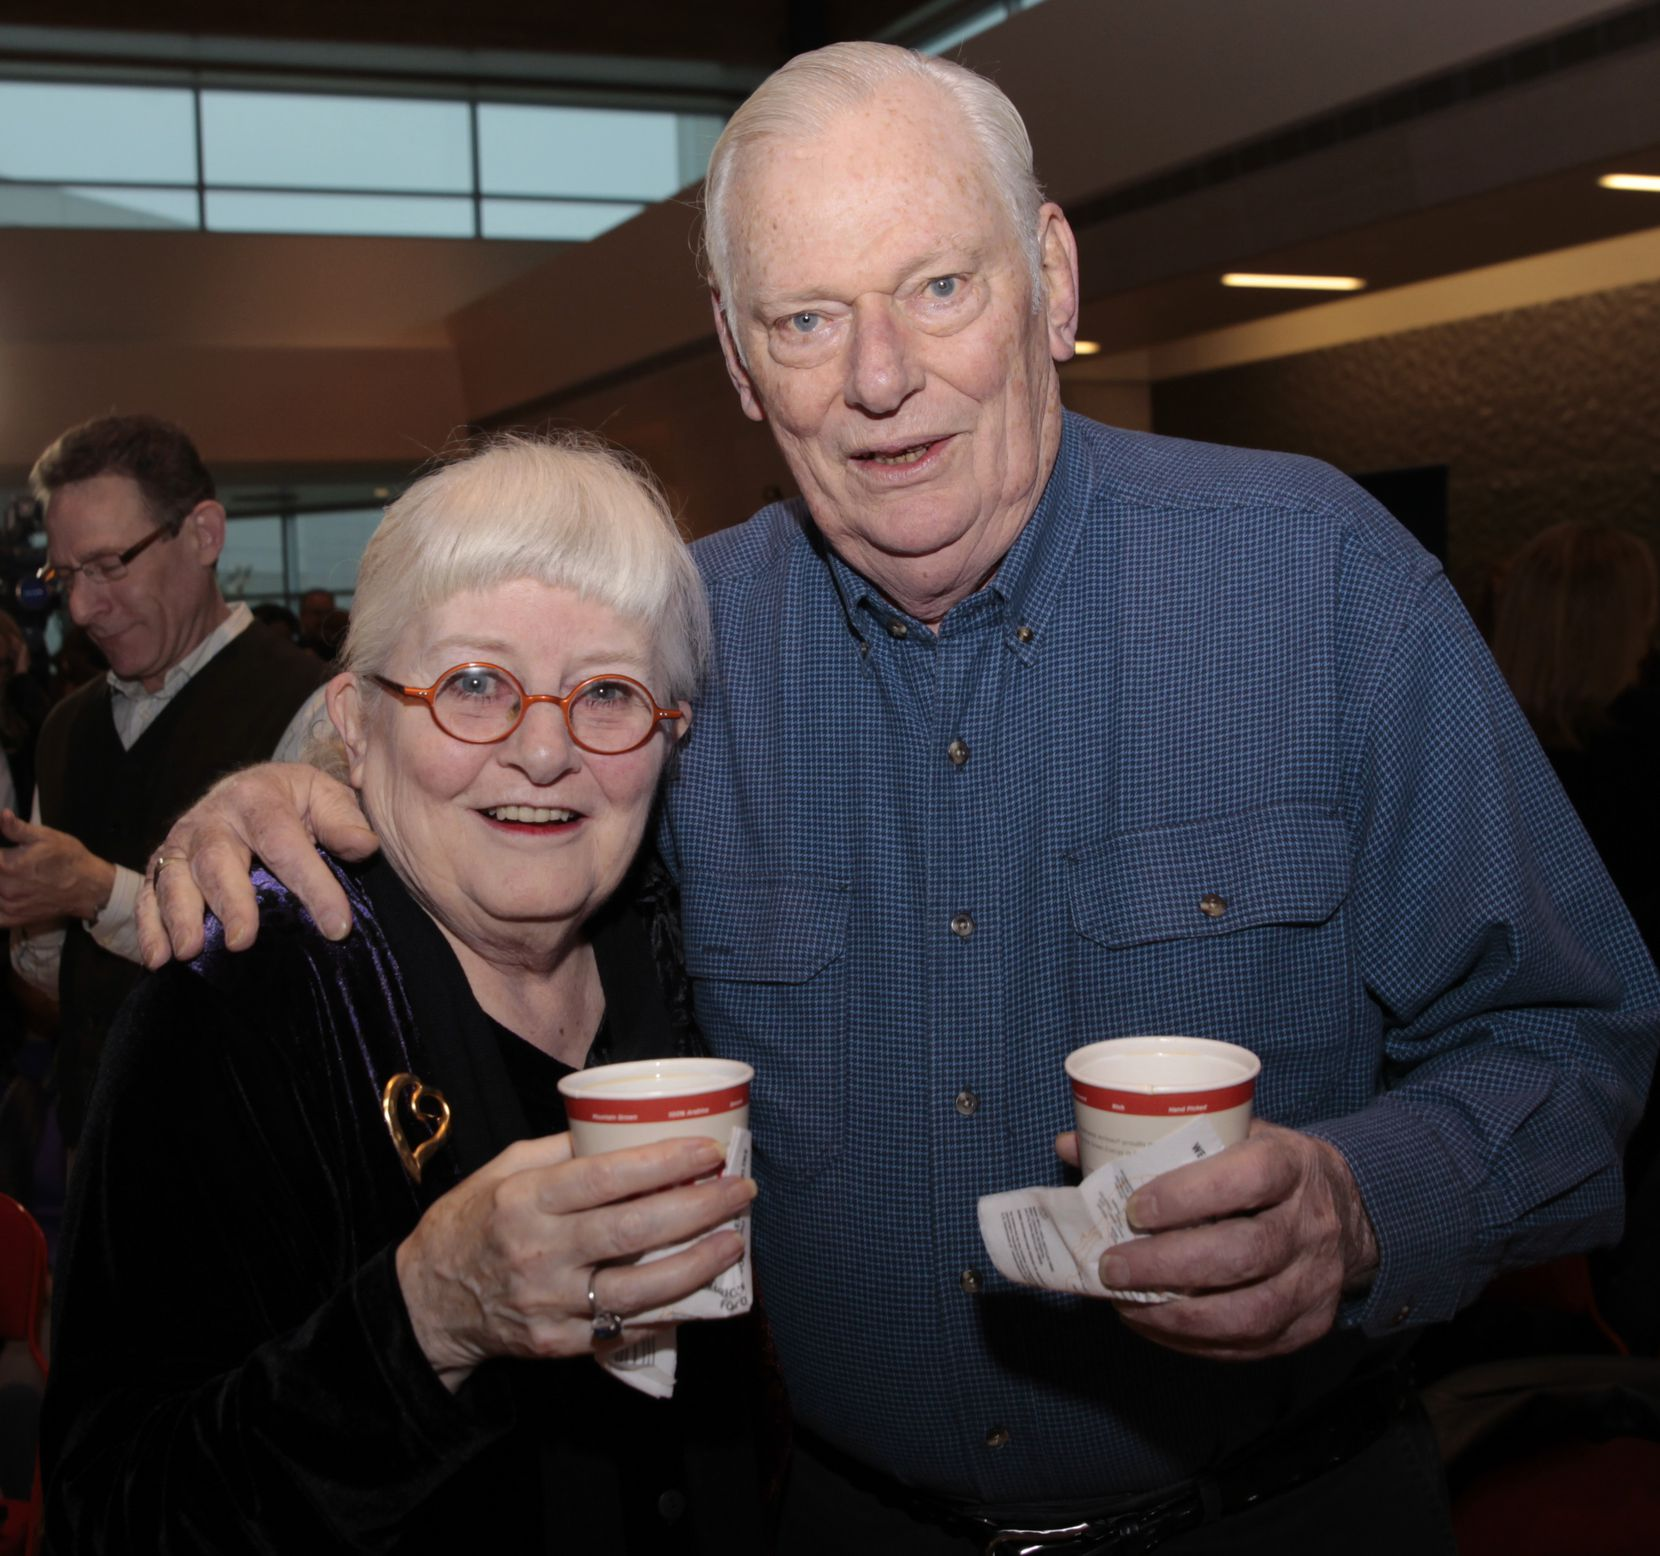 Colleen Barrett, president emeritus, and Herb Kelleher, founder and chairman emeritus, are shown at a news conference at Dallas Love Field on Feb. 3, 2014, when Southwest Airlines announced plans to add more nonstop flights after Wright Amendment restrictions were lifted.